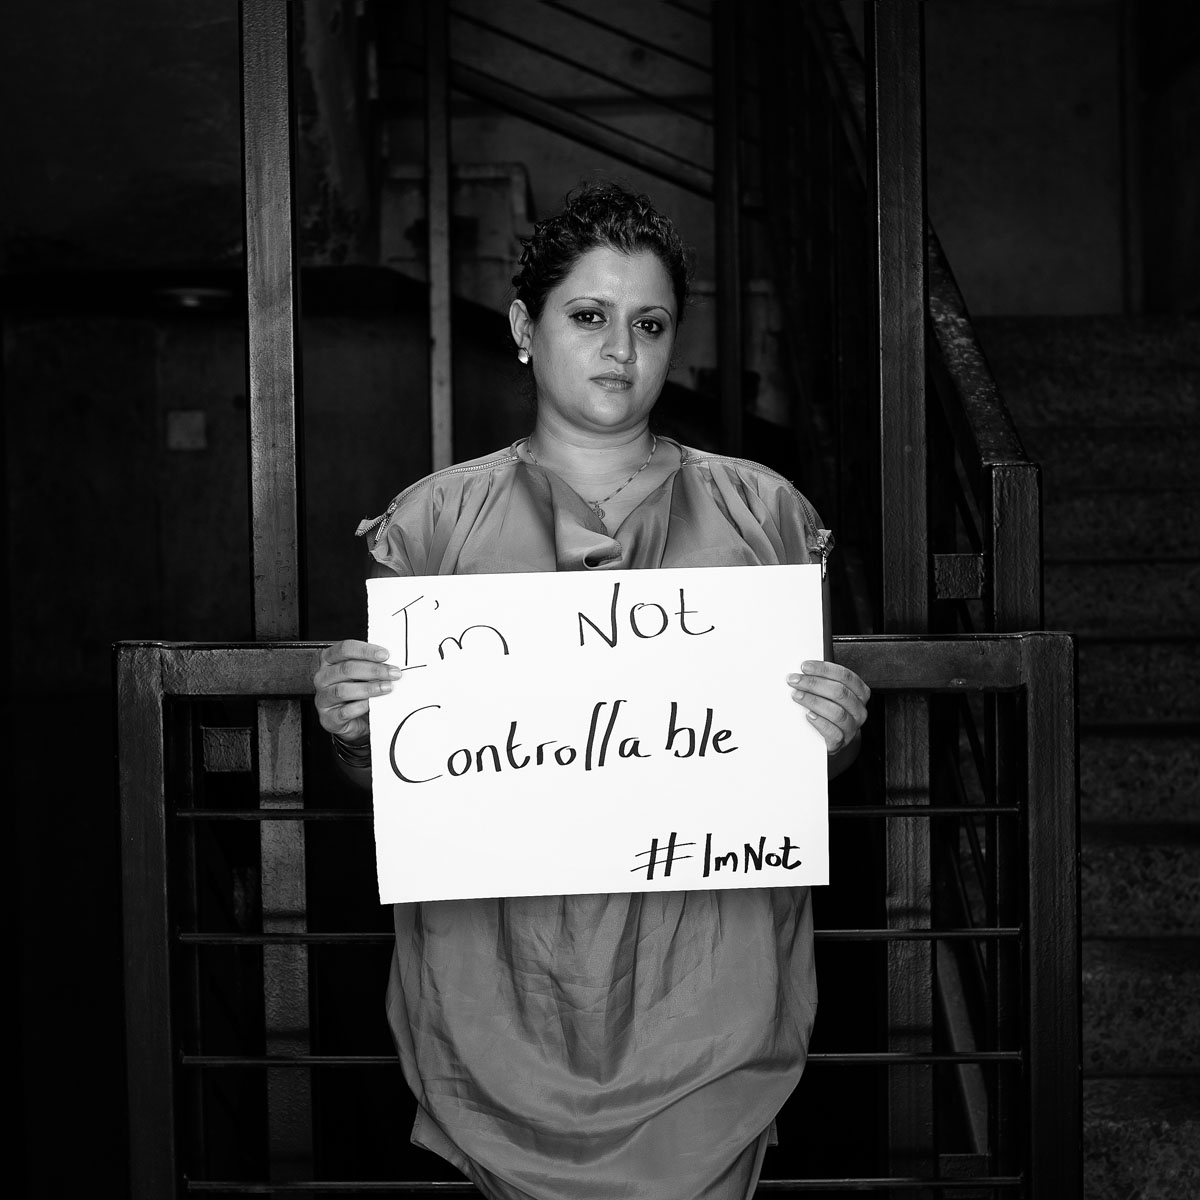 #Imnot controllable